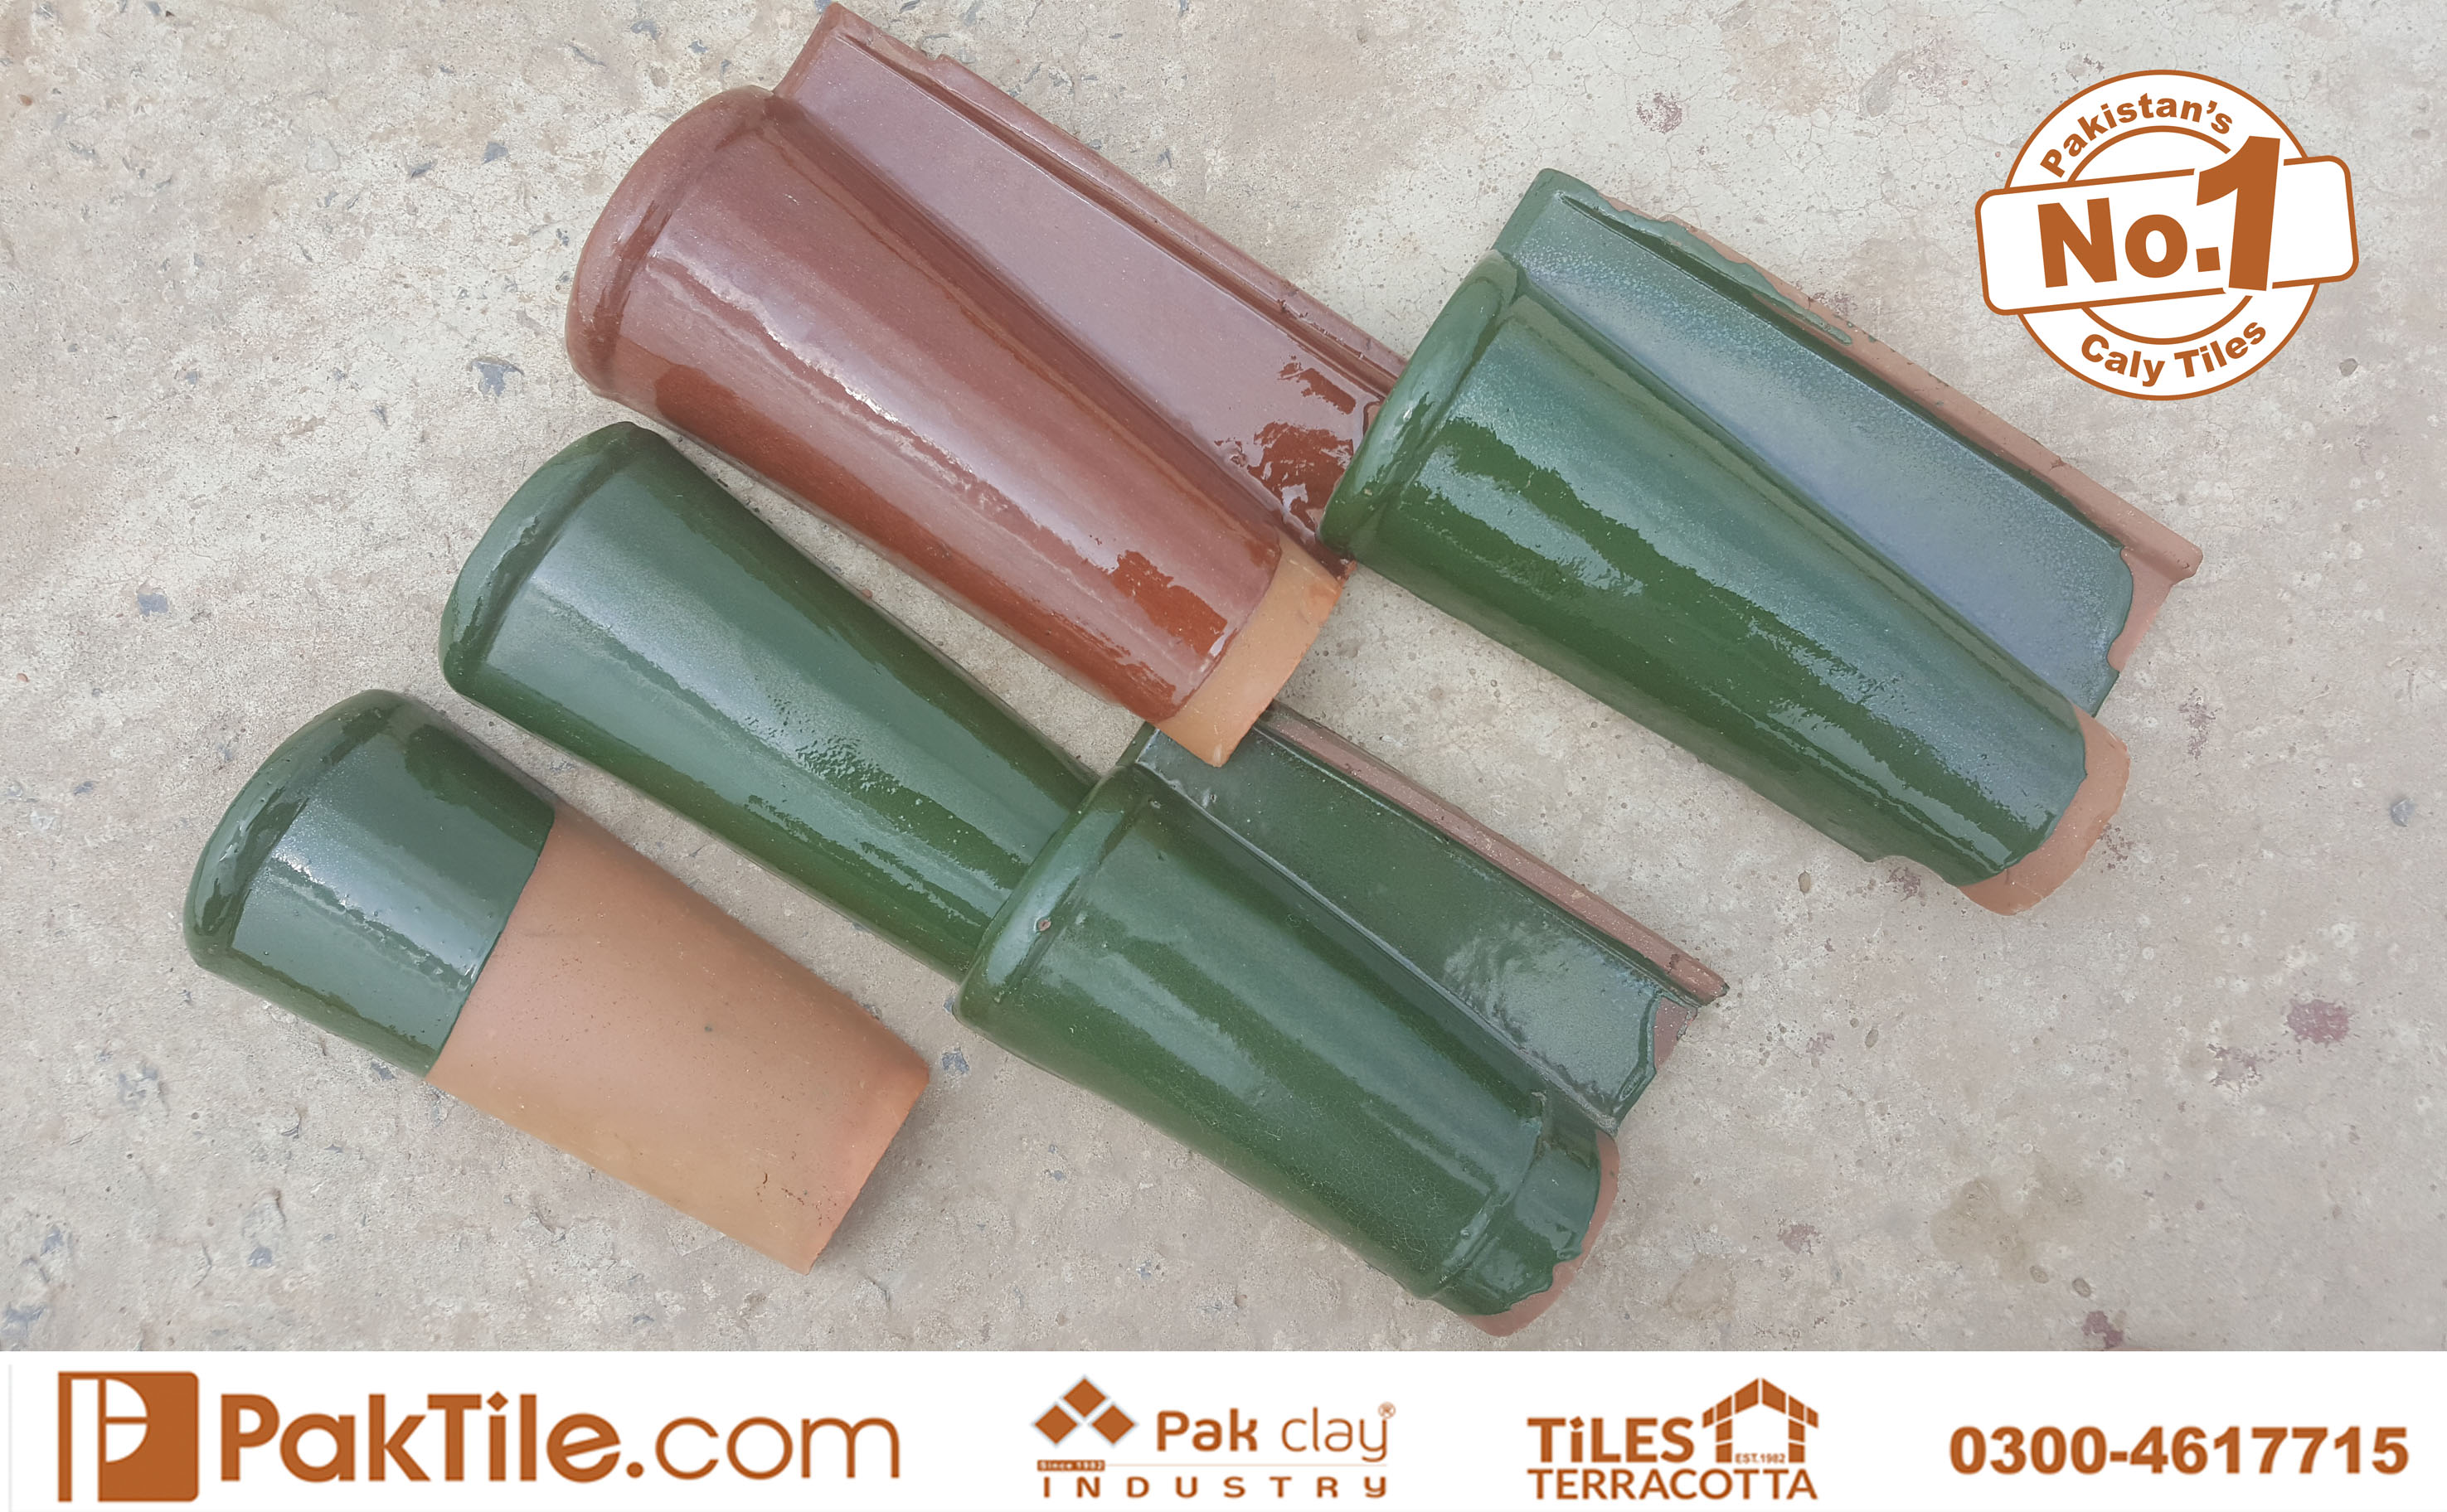 2 Best Quality Terracotta Glazed Khaprail Roof Tiles Textures Types and Rates in Lahore Pakistan Images